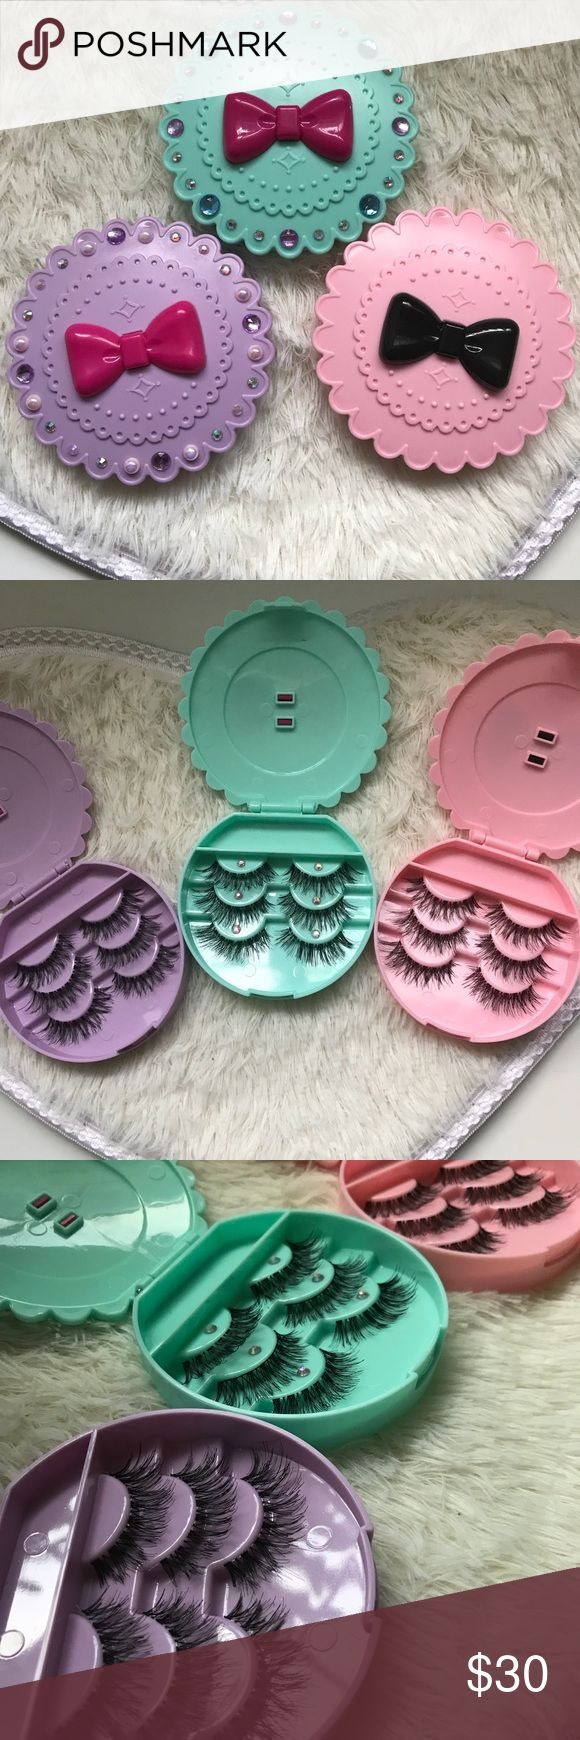 9 WSP Lashes + 3 Eyelash cases All brand new include  ✅ 3 Eyelash Cases ( you can choose color )   For example, 2 pink 1 mint color  If you don't message me you will get mint, pink and lavender❣️ ✅ 9 wispy Eyelashes   Great for a GIFT❤️✨ Each eyelash set wrapped separately with TLC❣️    # tags Iconic, mink, red cherry eyelashes, house of lashes, doll, kawaii, case, full, natural,  Koko, Ardell, wispies, Demi , makeup, mascara, eyelash applicator, Mykonos Mink , Lashes , wispy ,eyelash case…